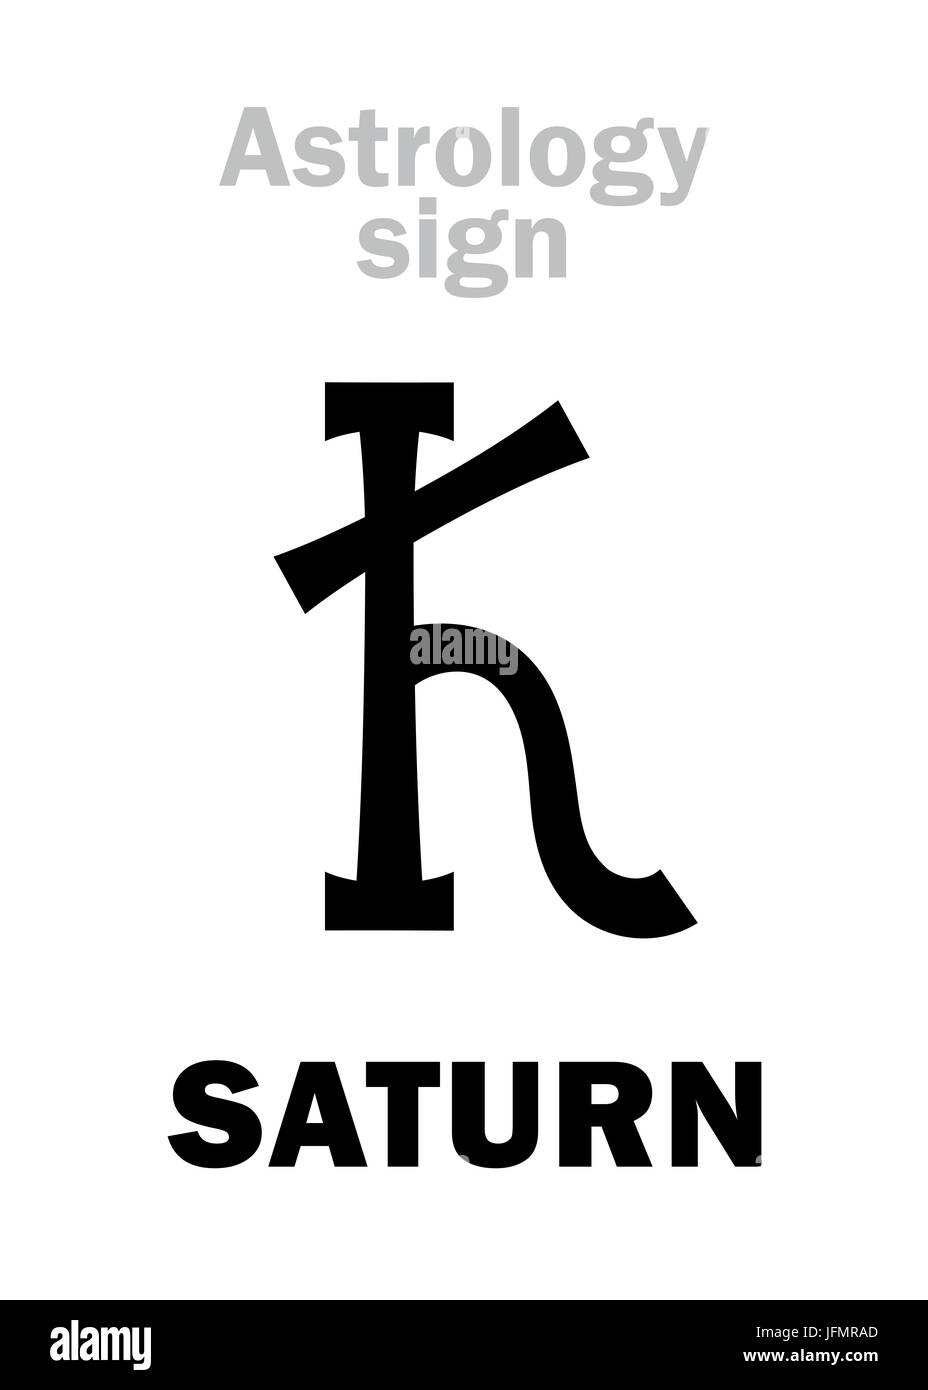 Astrology planet saturn stock photo royalty free image 147360149 astrology planet saturn buycottarizona Image collections